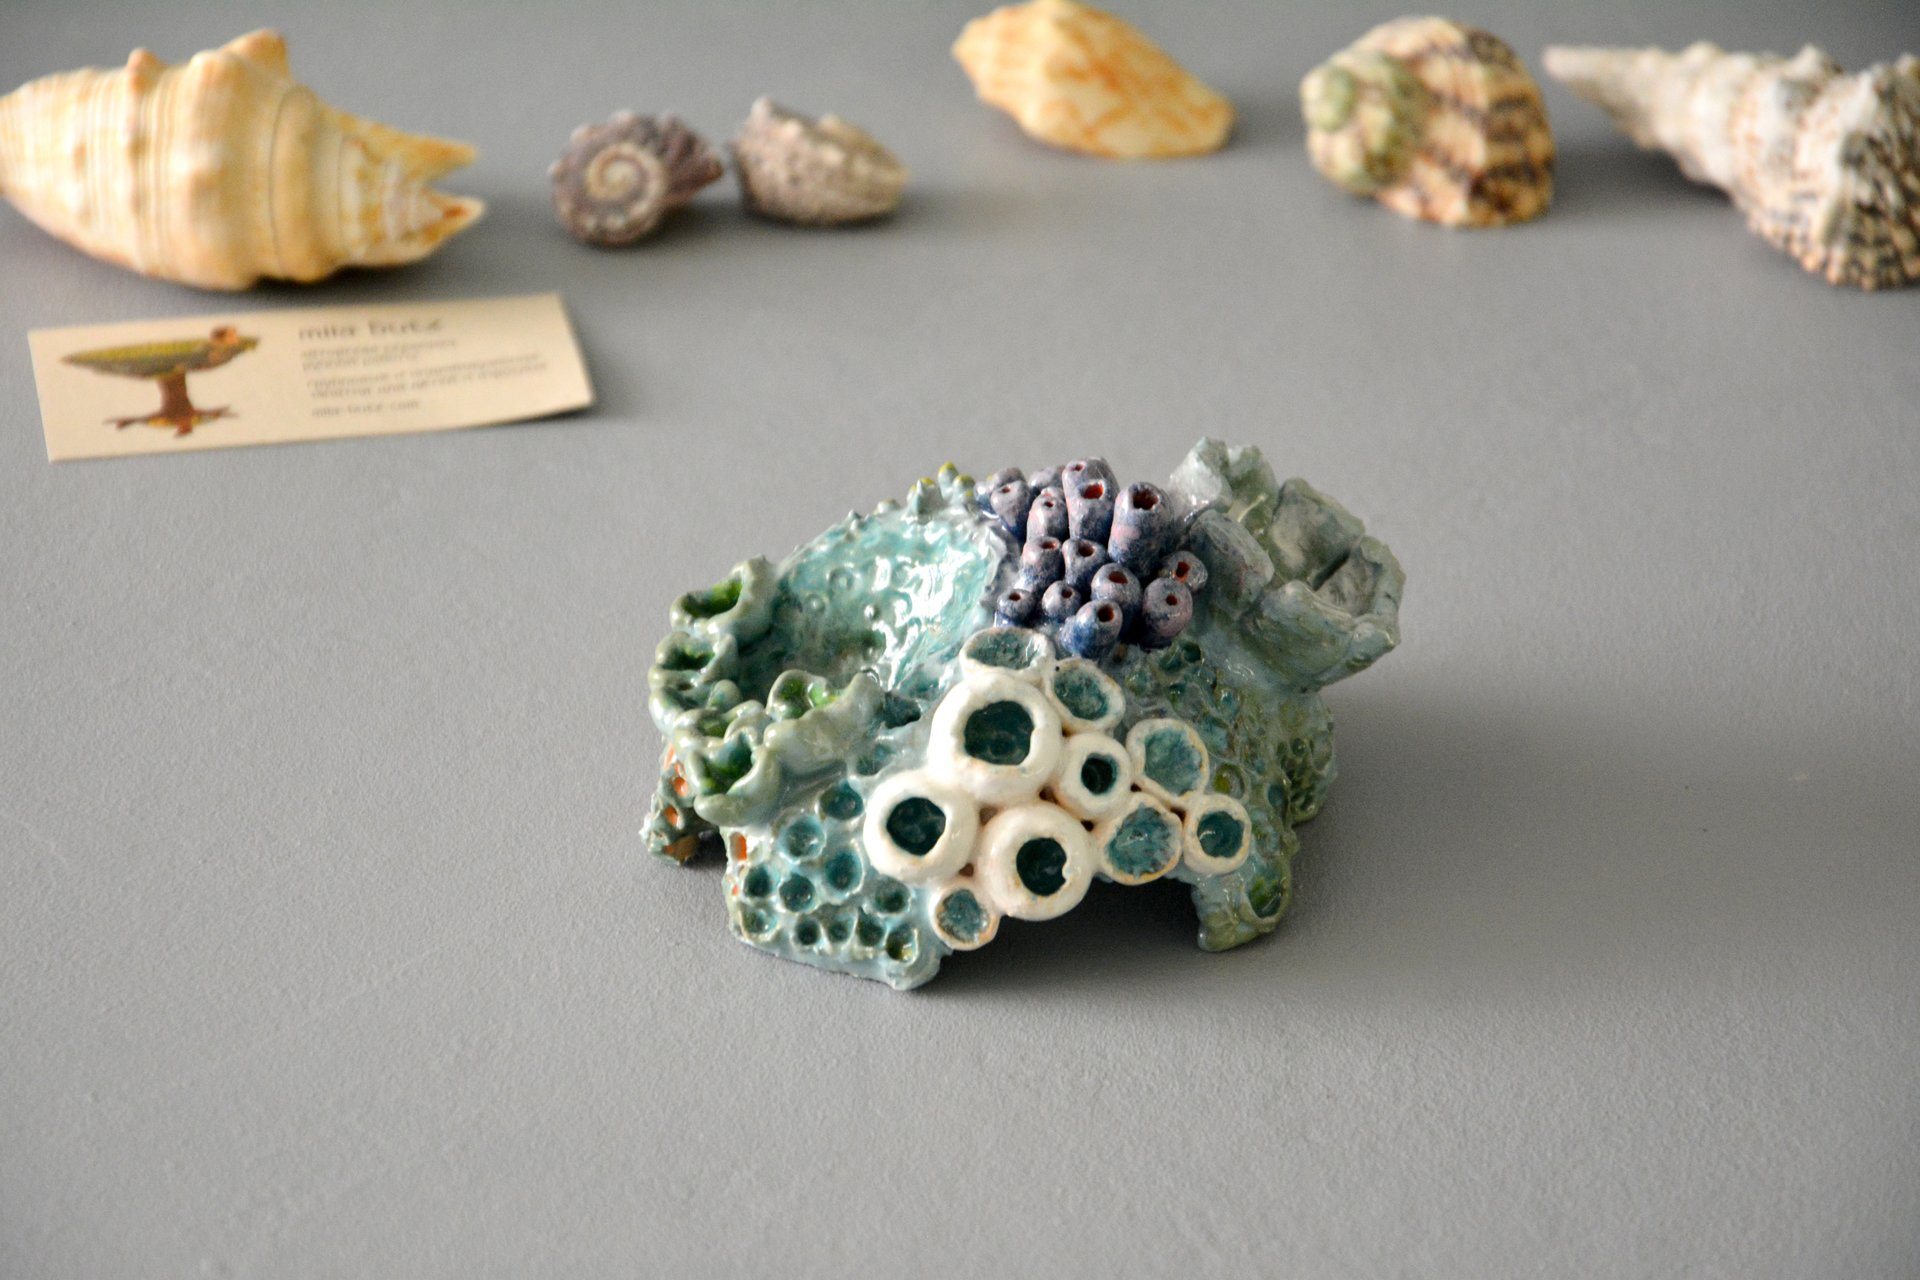 Coral IV - Ceramic for aquarium, width - 11 cm, height - 7 cm, photo 1 of 6.